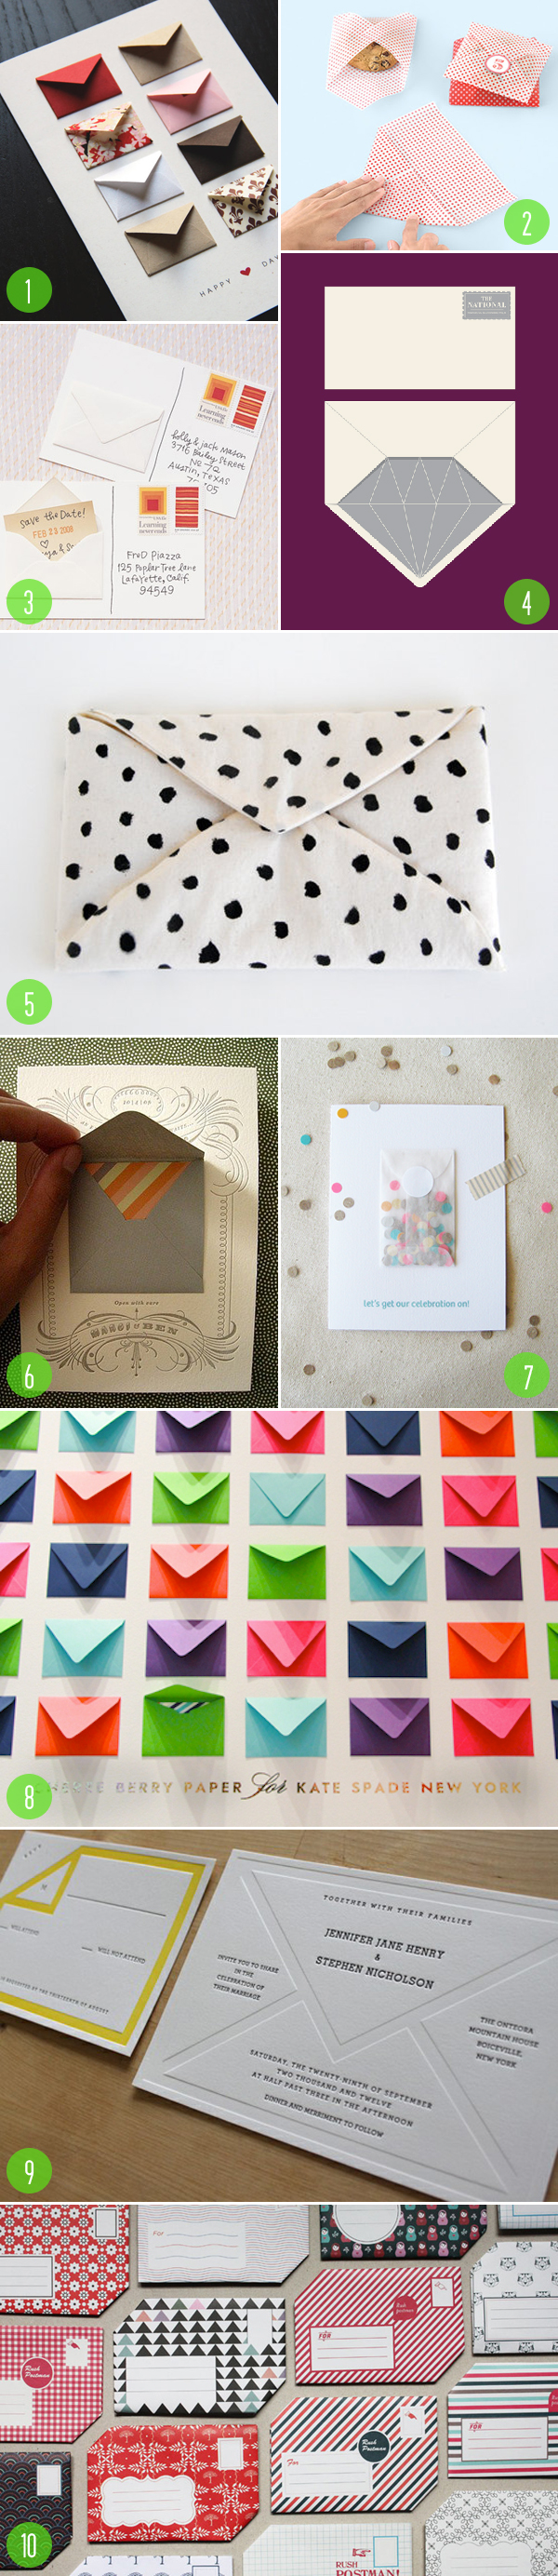 top 10: envelope inspiration